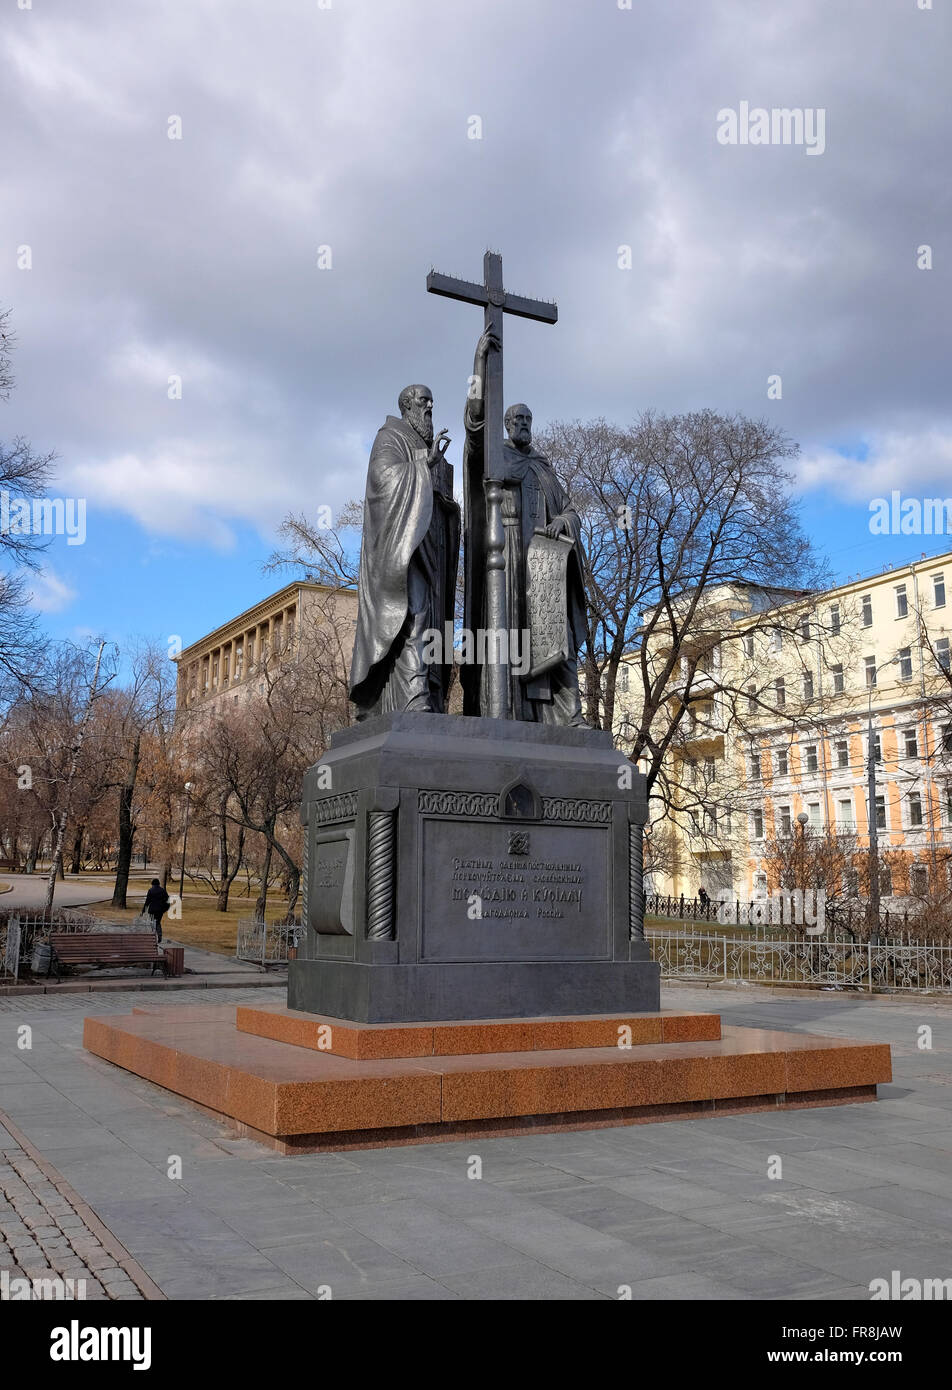 Moscow, Monument to Cyril and Methodius, the holy, lighteners, creators of the Slavic alphabet - Stock Image